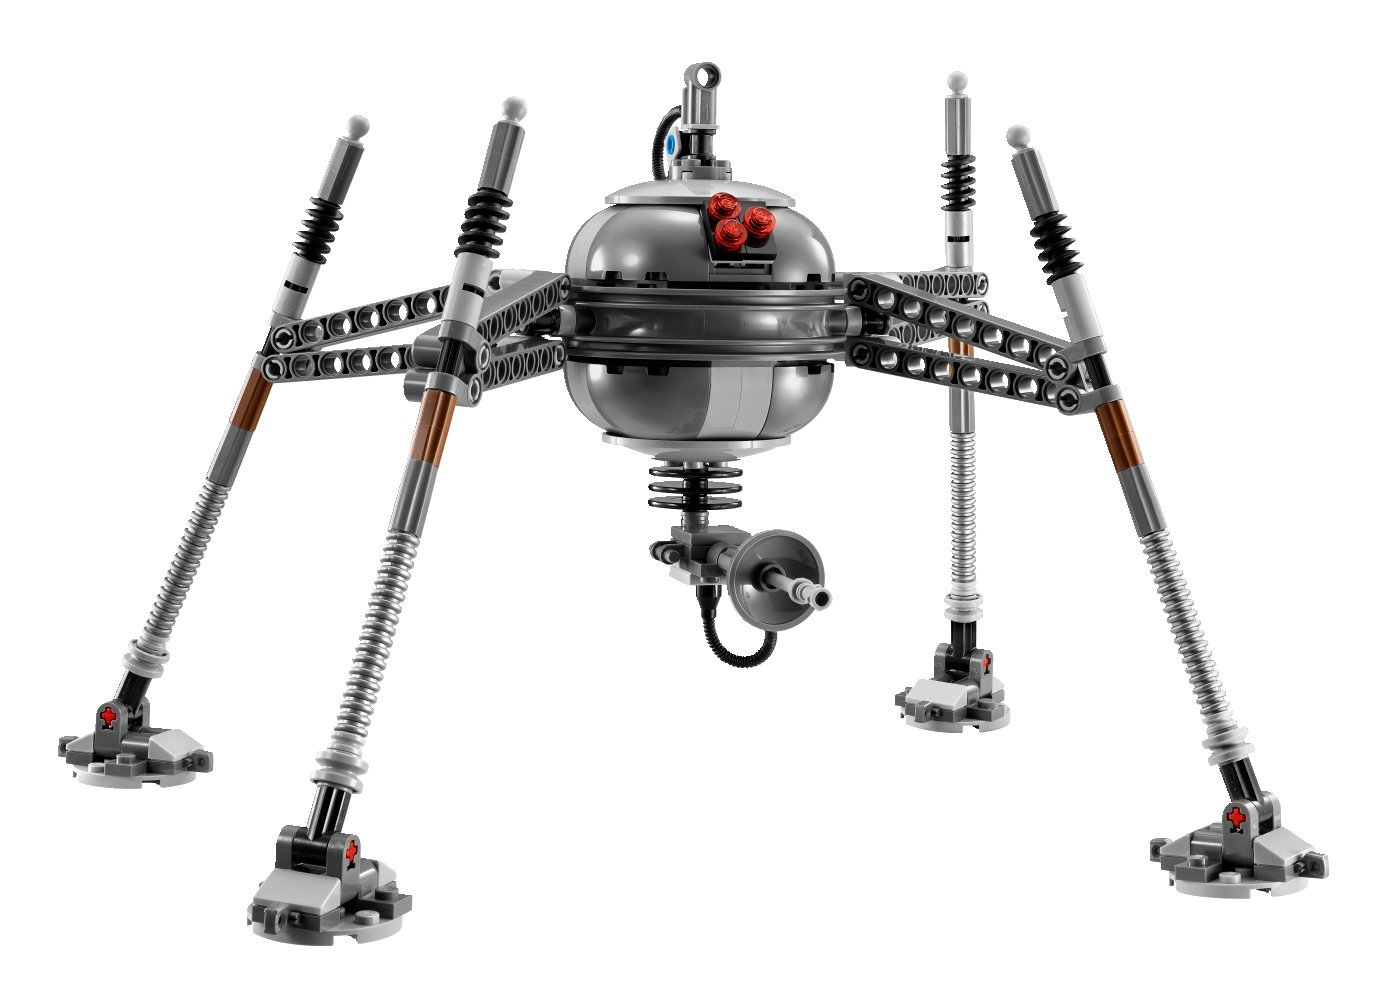 lego homing spider droid instructions